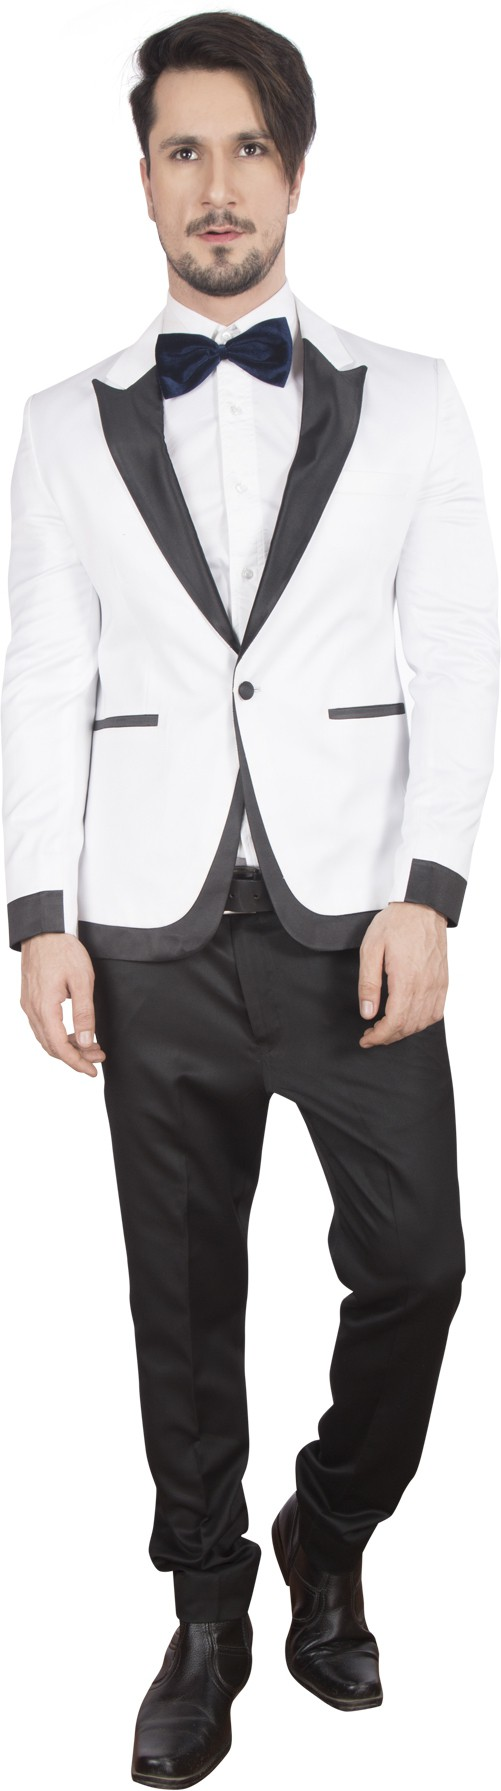 DheerajSharma Solid Tuxedo Style Formal Men's Blazer